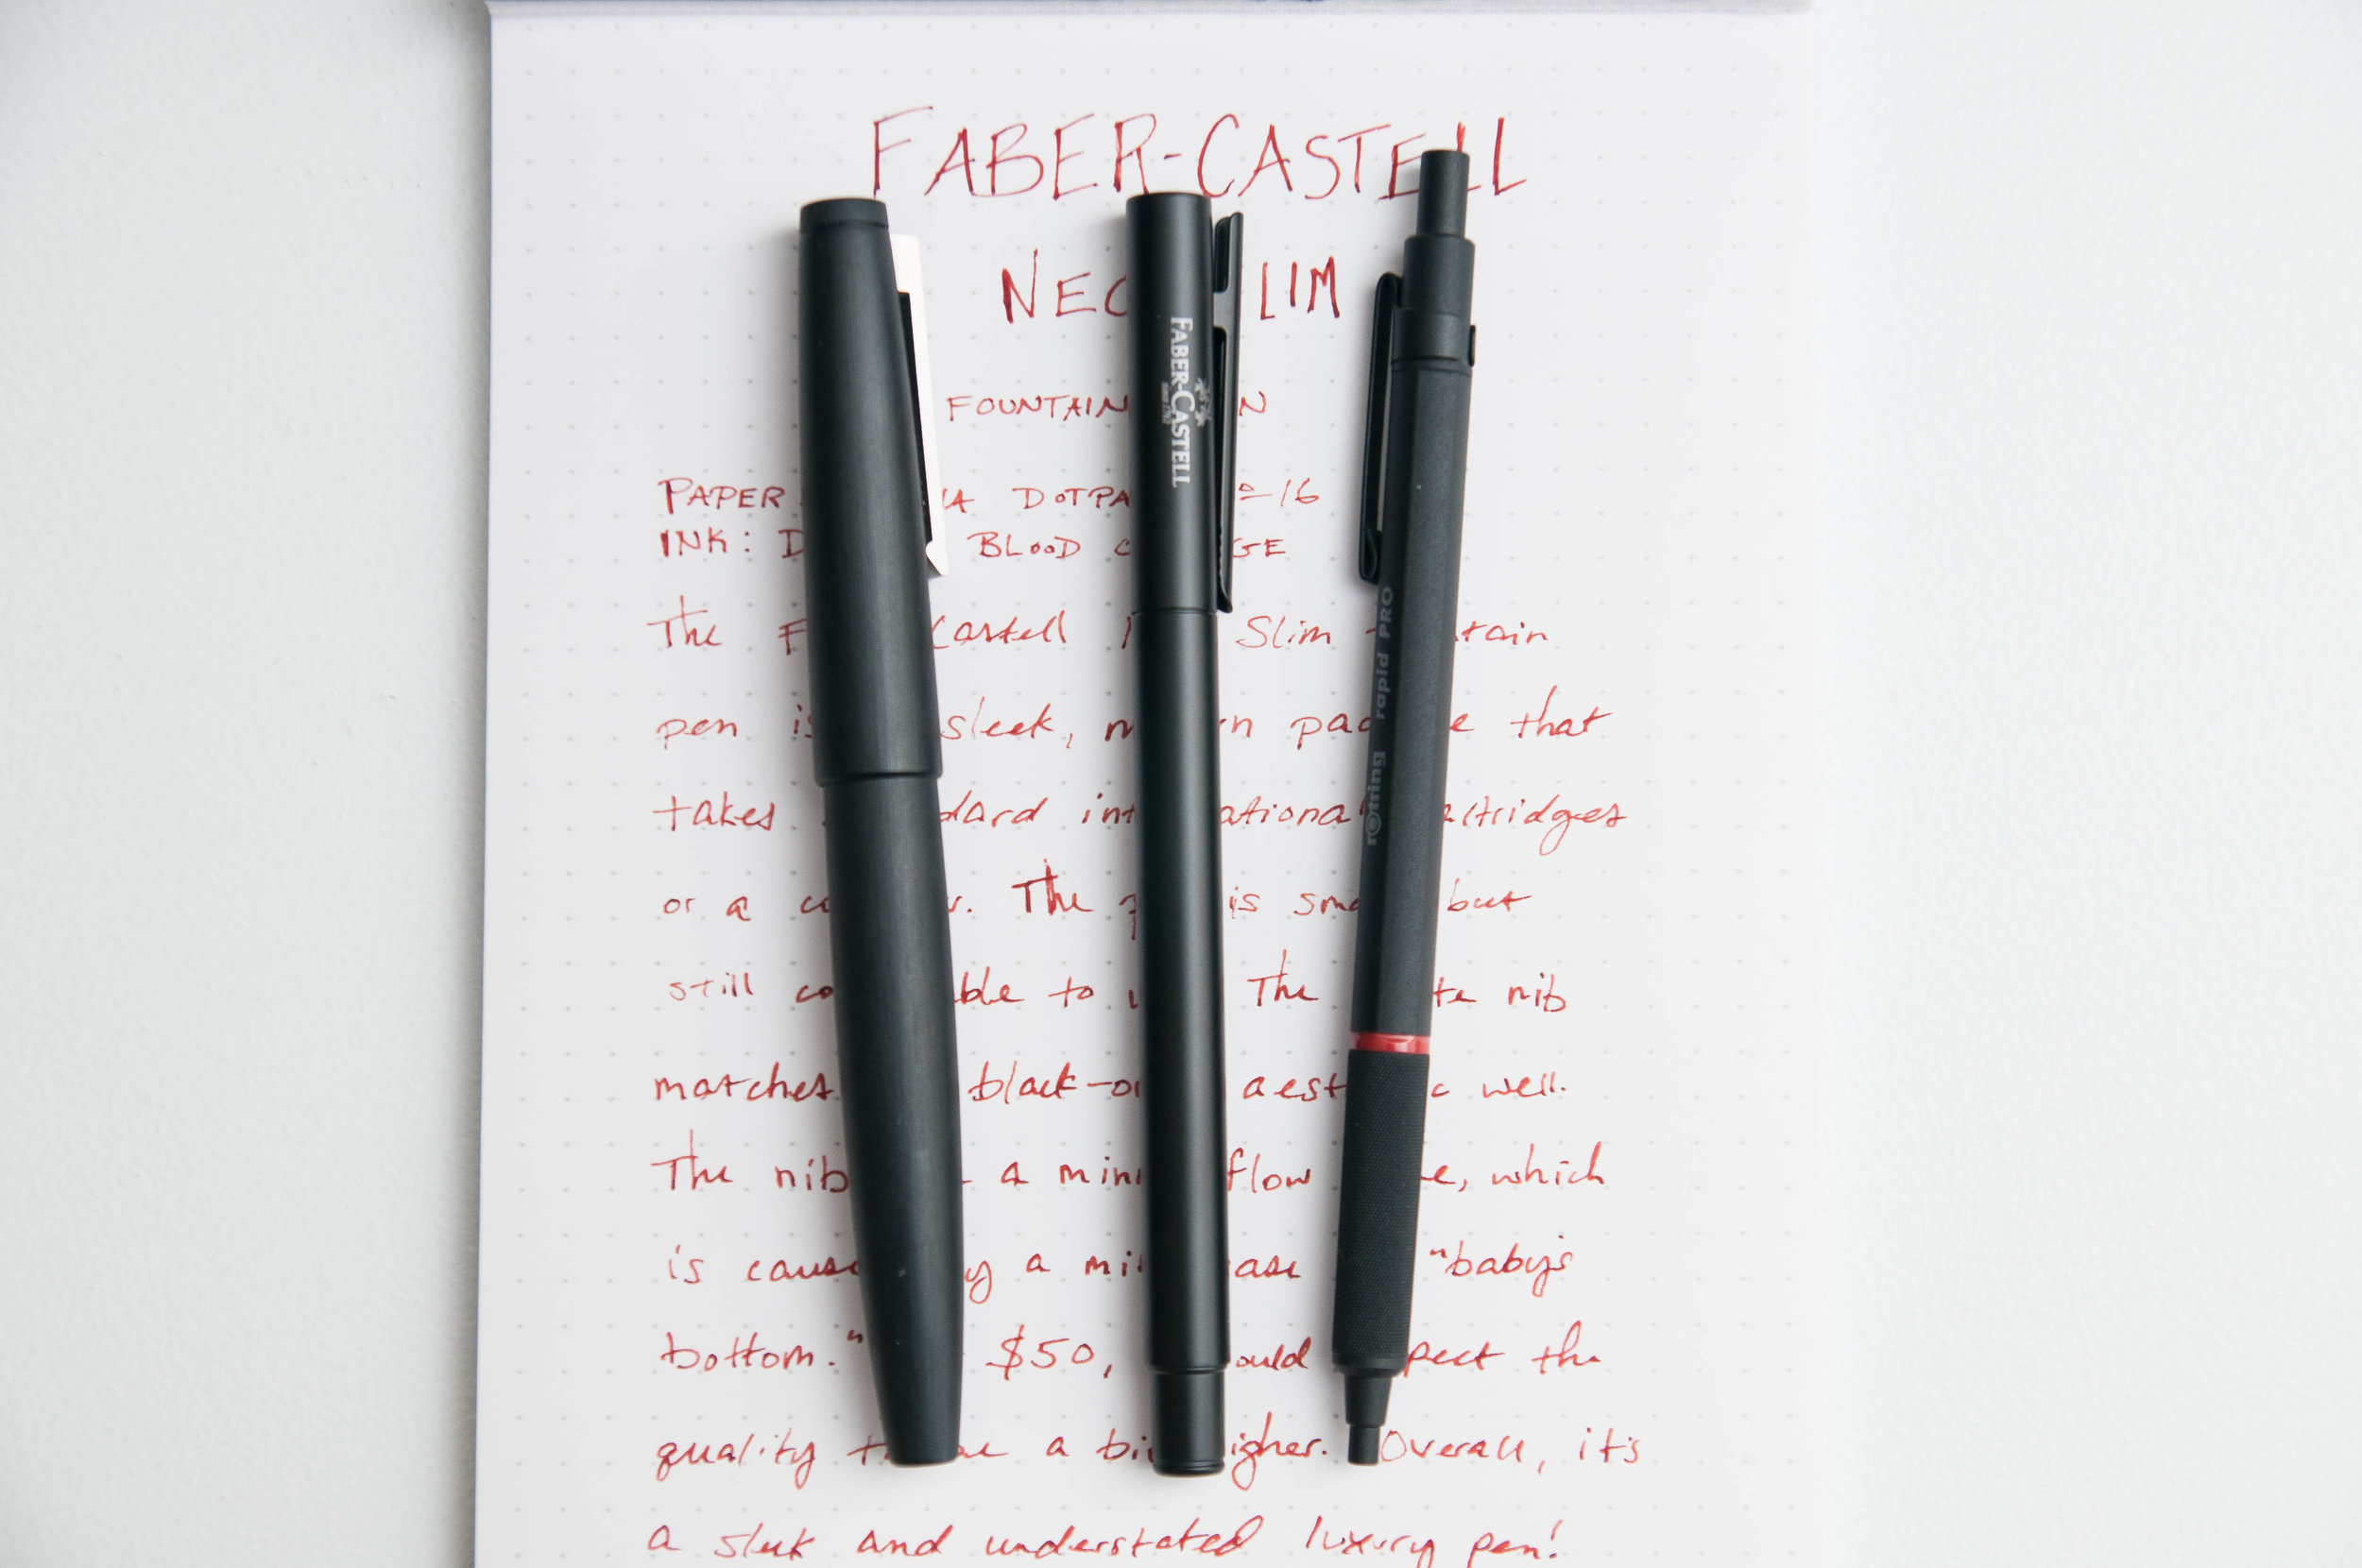 Faber-Castell NEO Slim Comparison